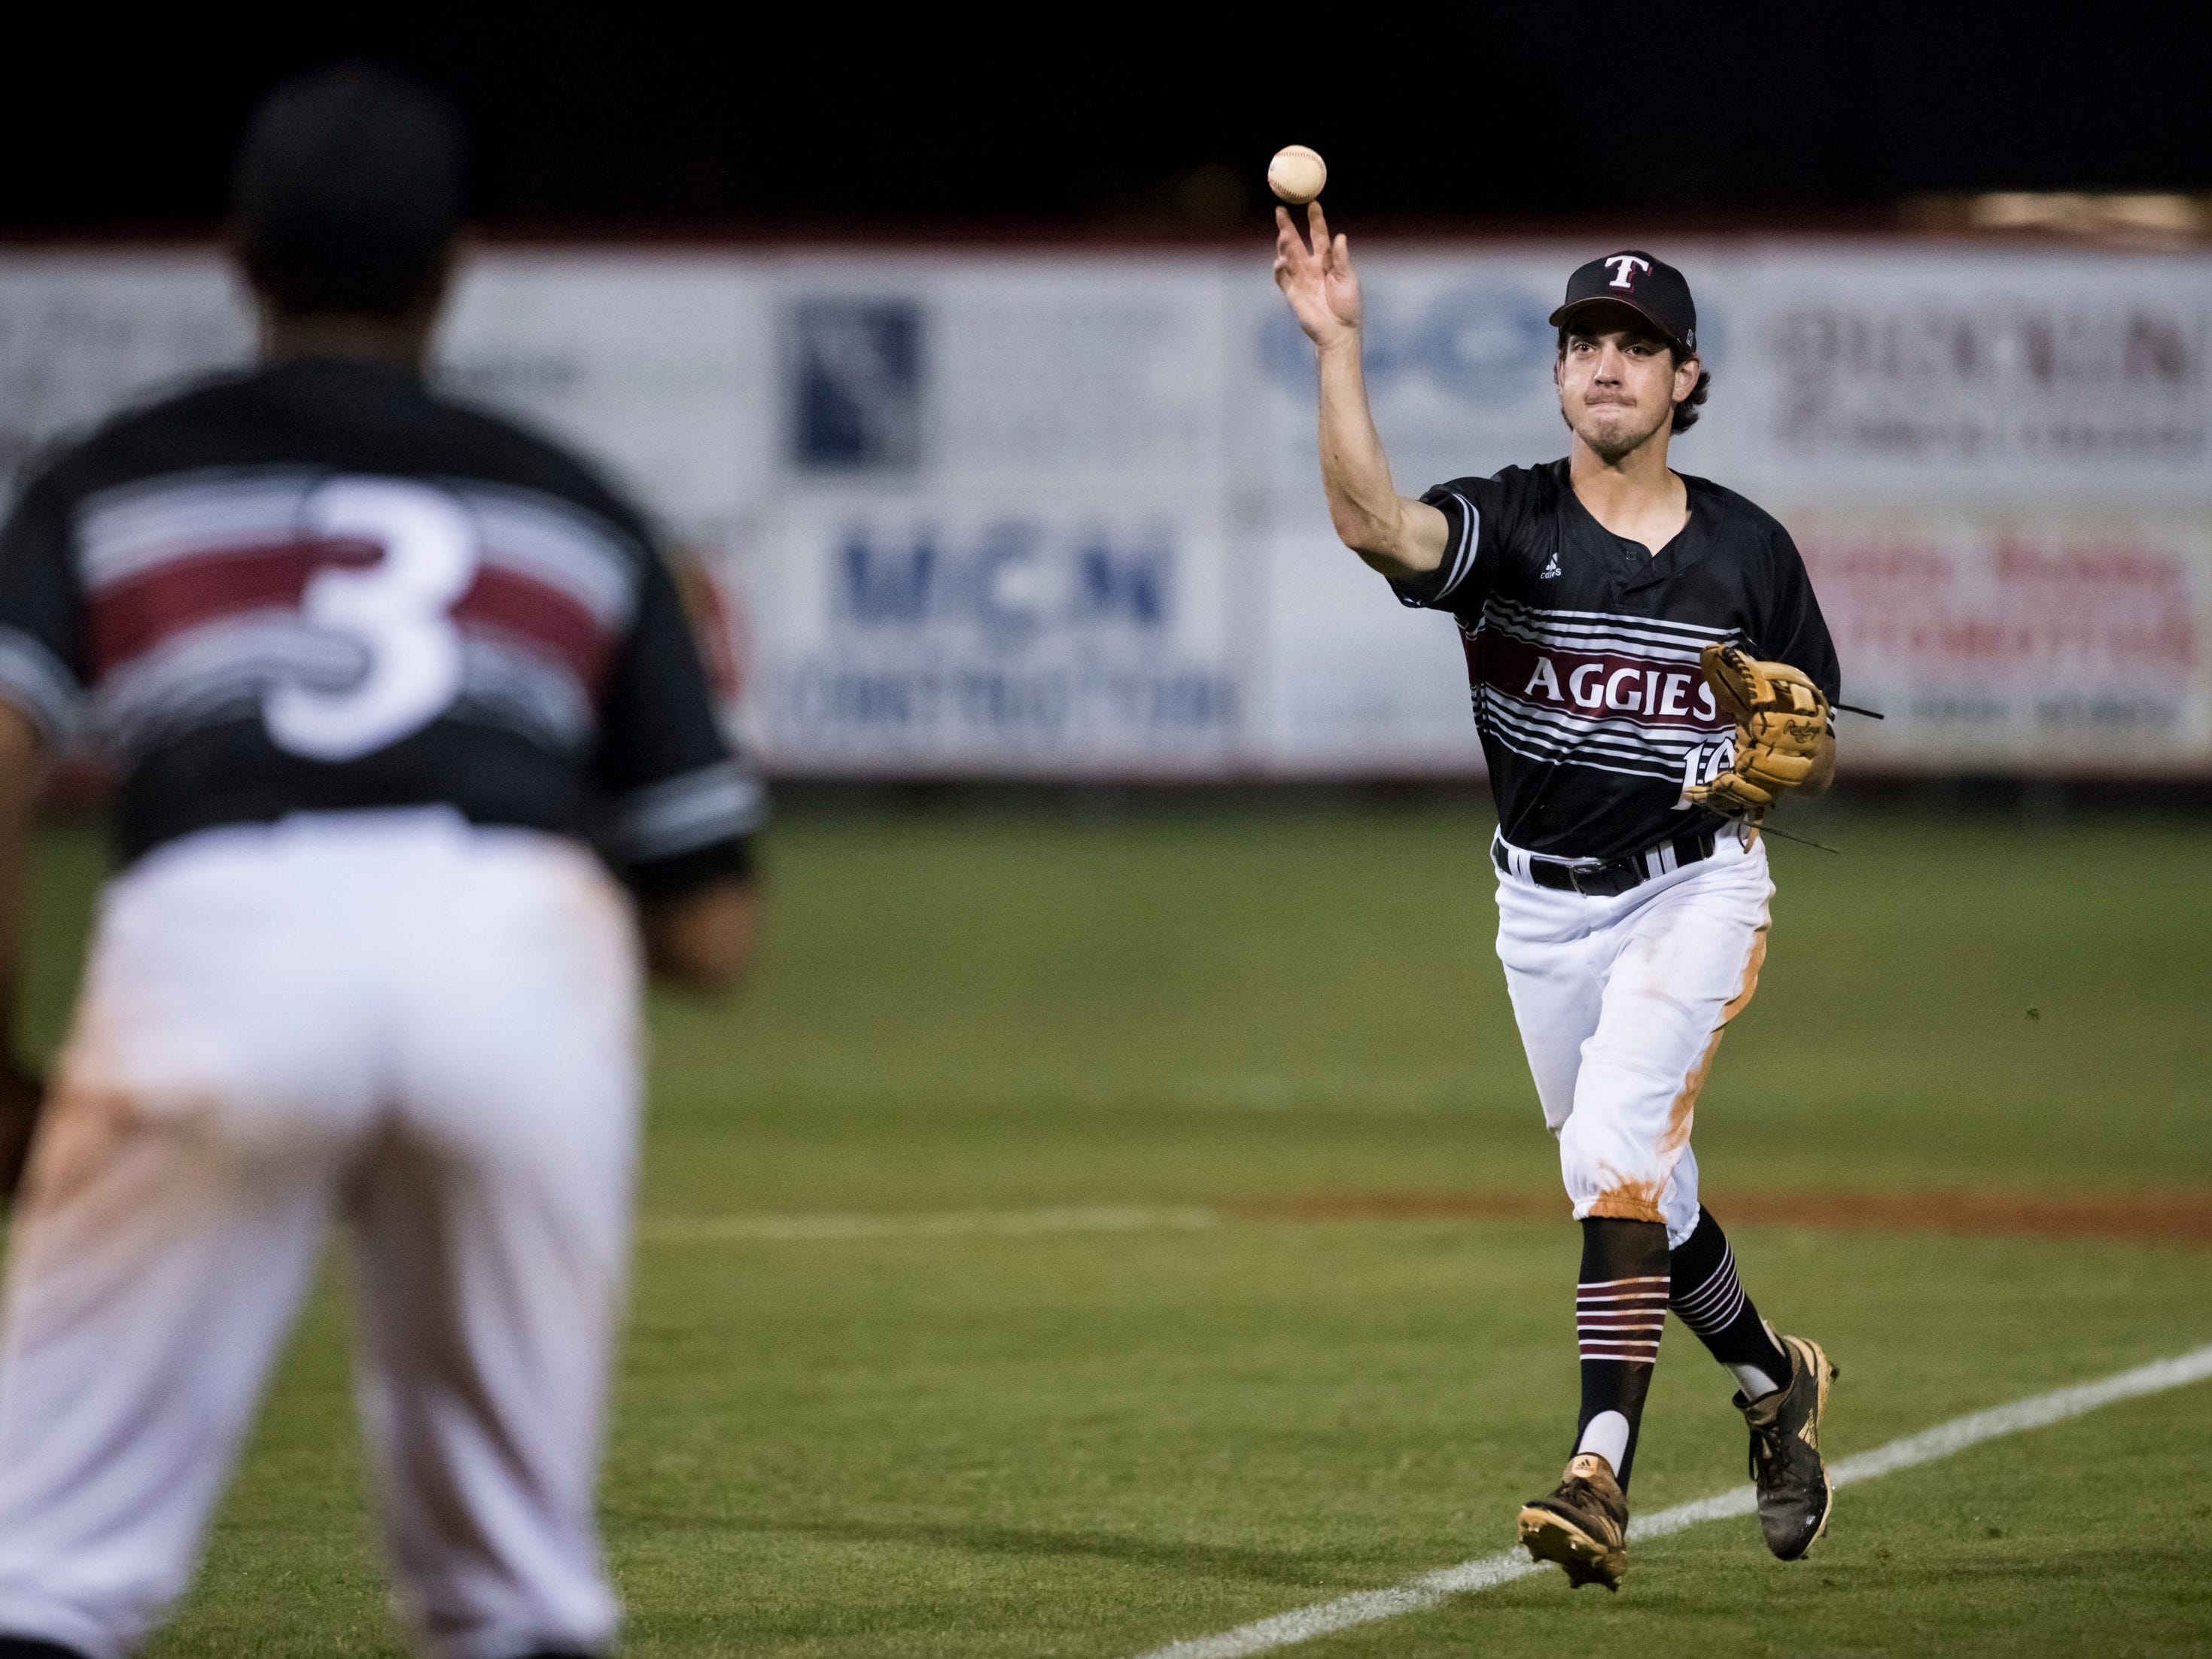 Hunter McLean (10) tosses to first for an out during the Tate vs Pace baseball game at Pace High School on Thursday, April 11, 2019.